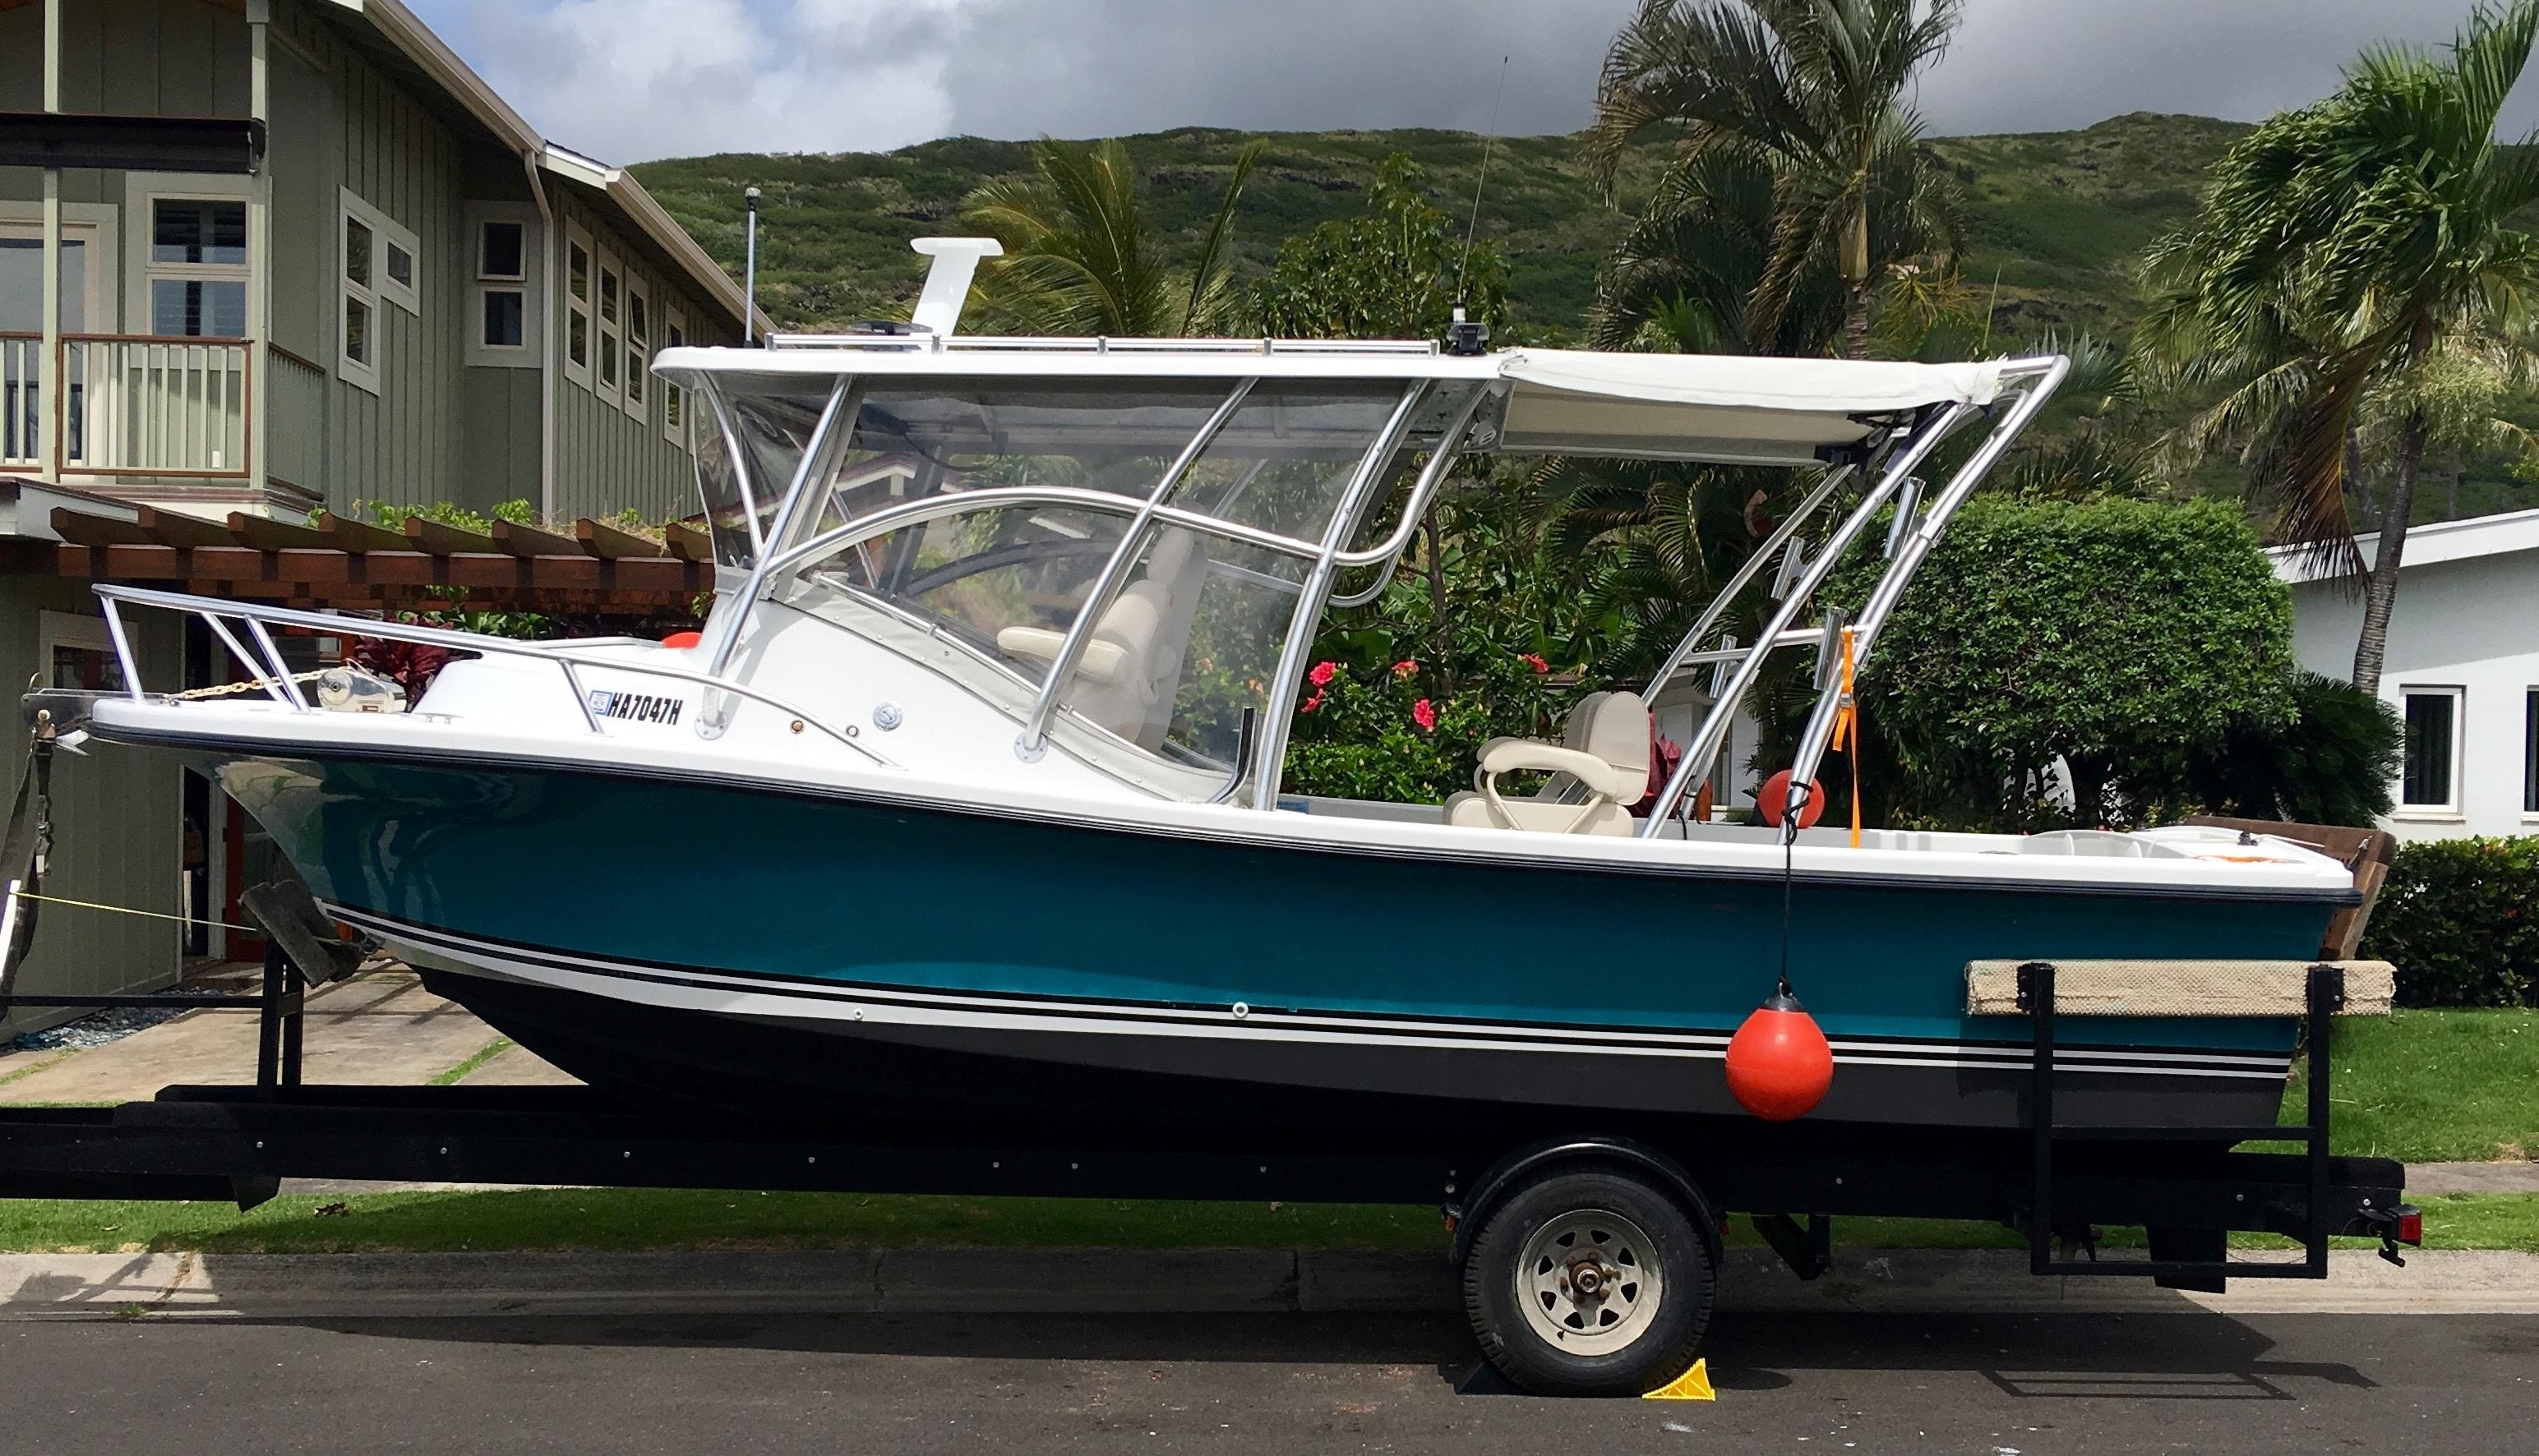 Boat Dealers Tampa >> 2010 Makau 24 Power Boat For Sale - www.yachtworld.com